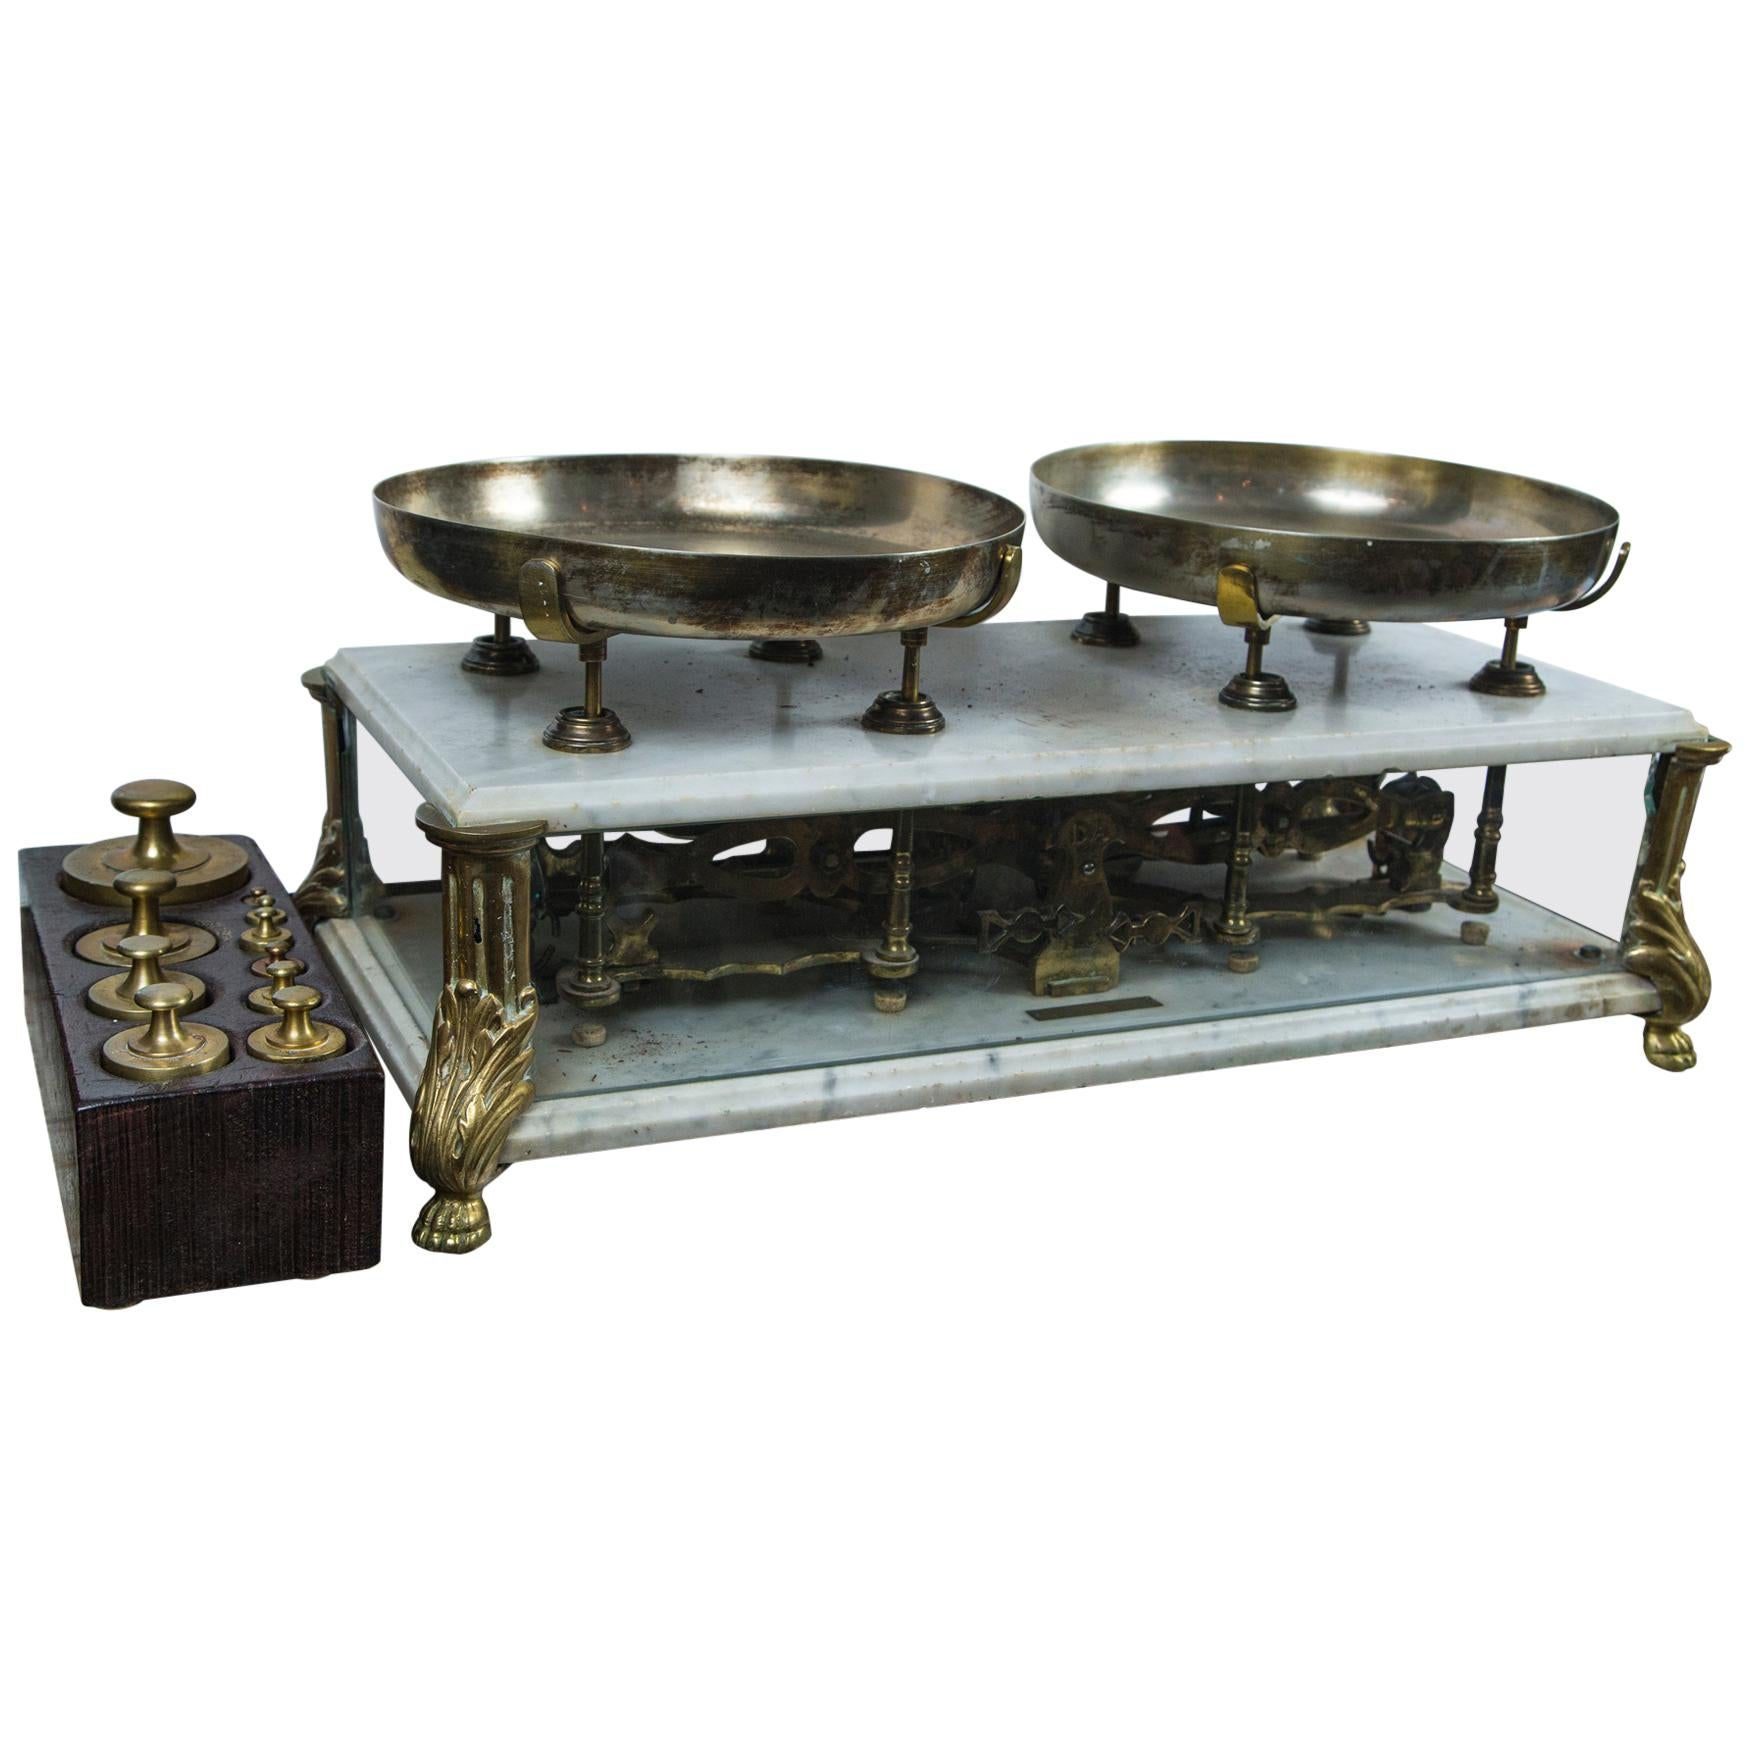 Set of Balance Scales with Original Weights